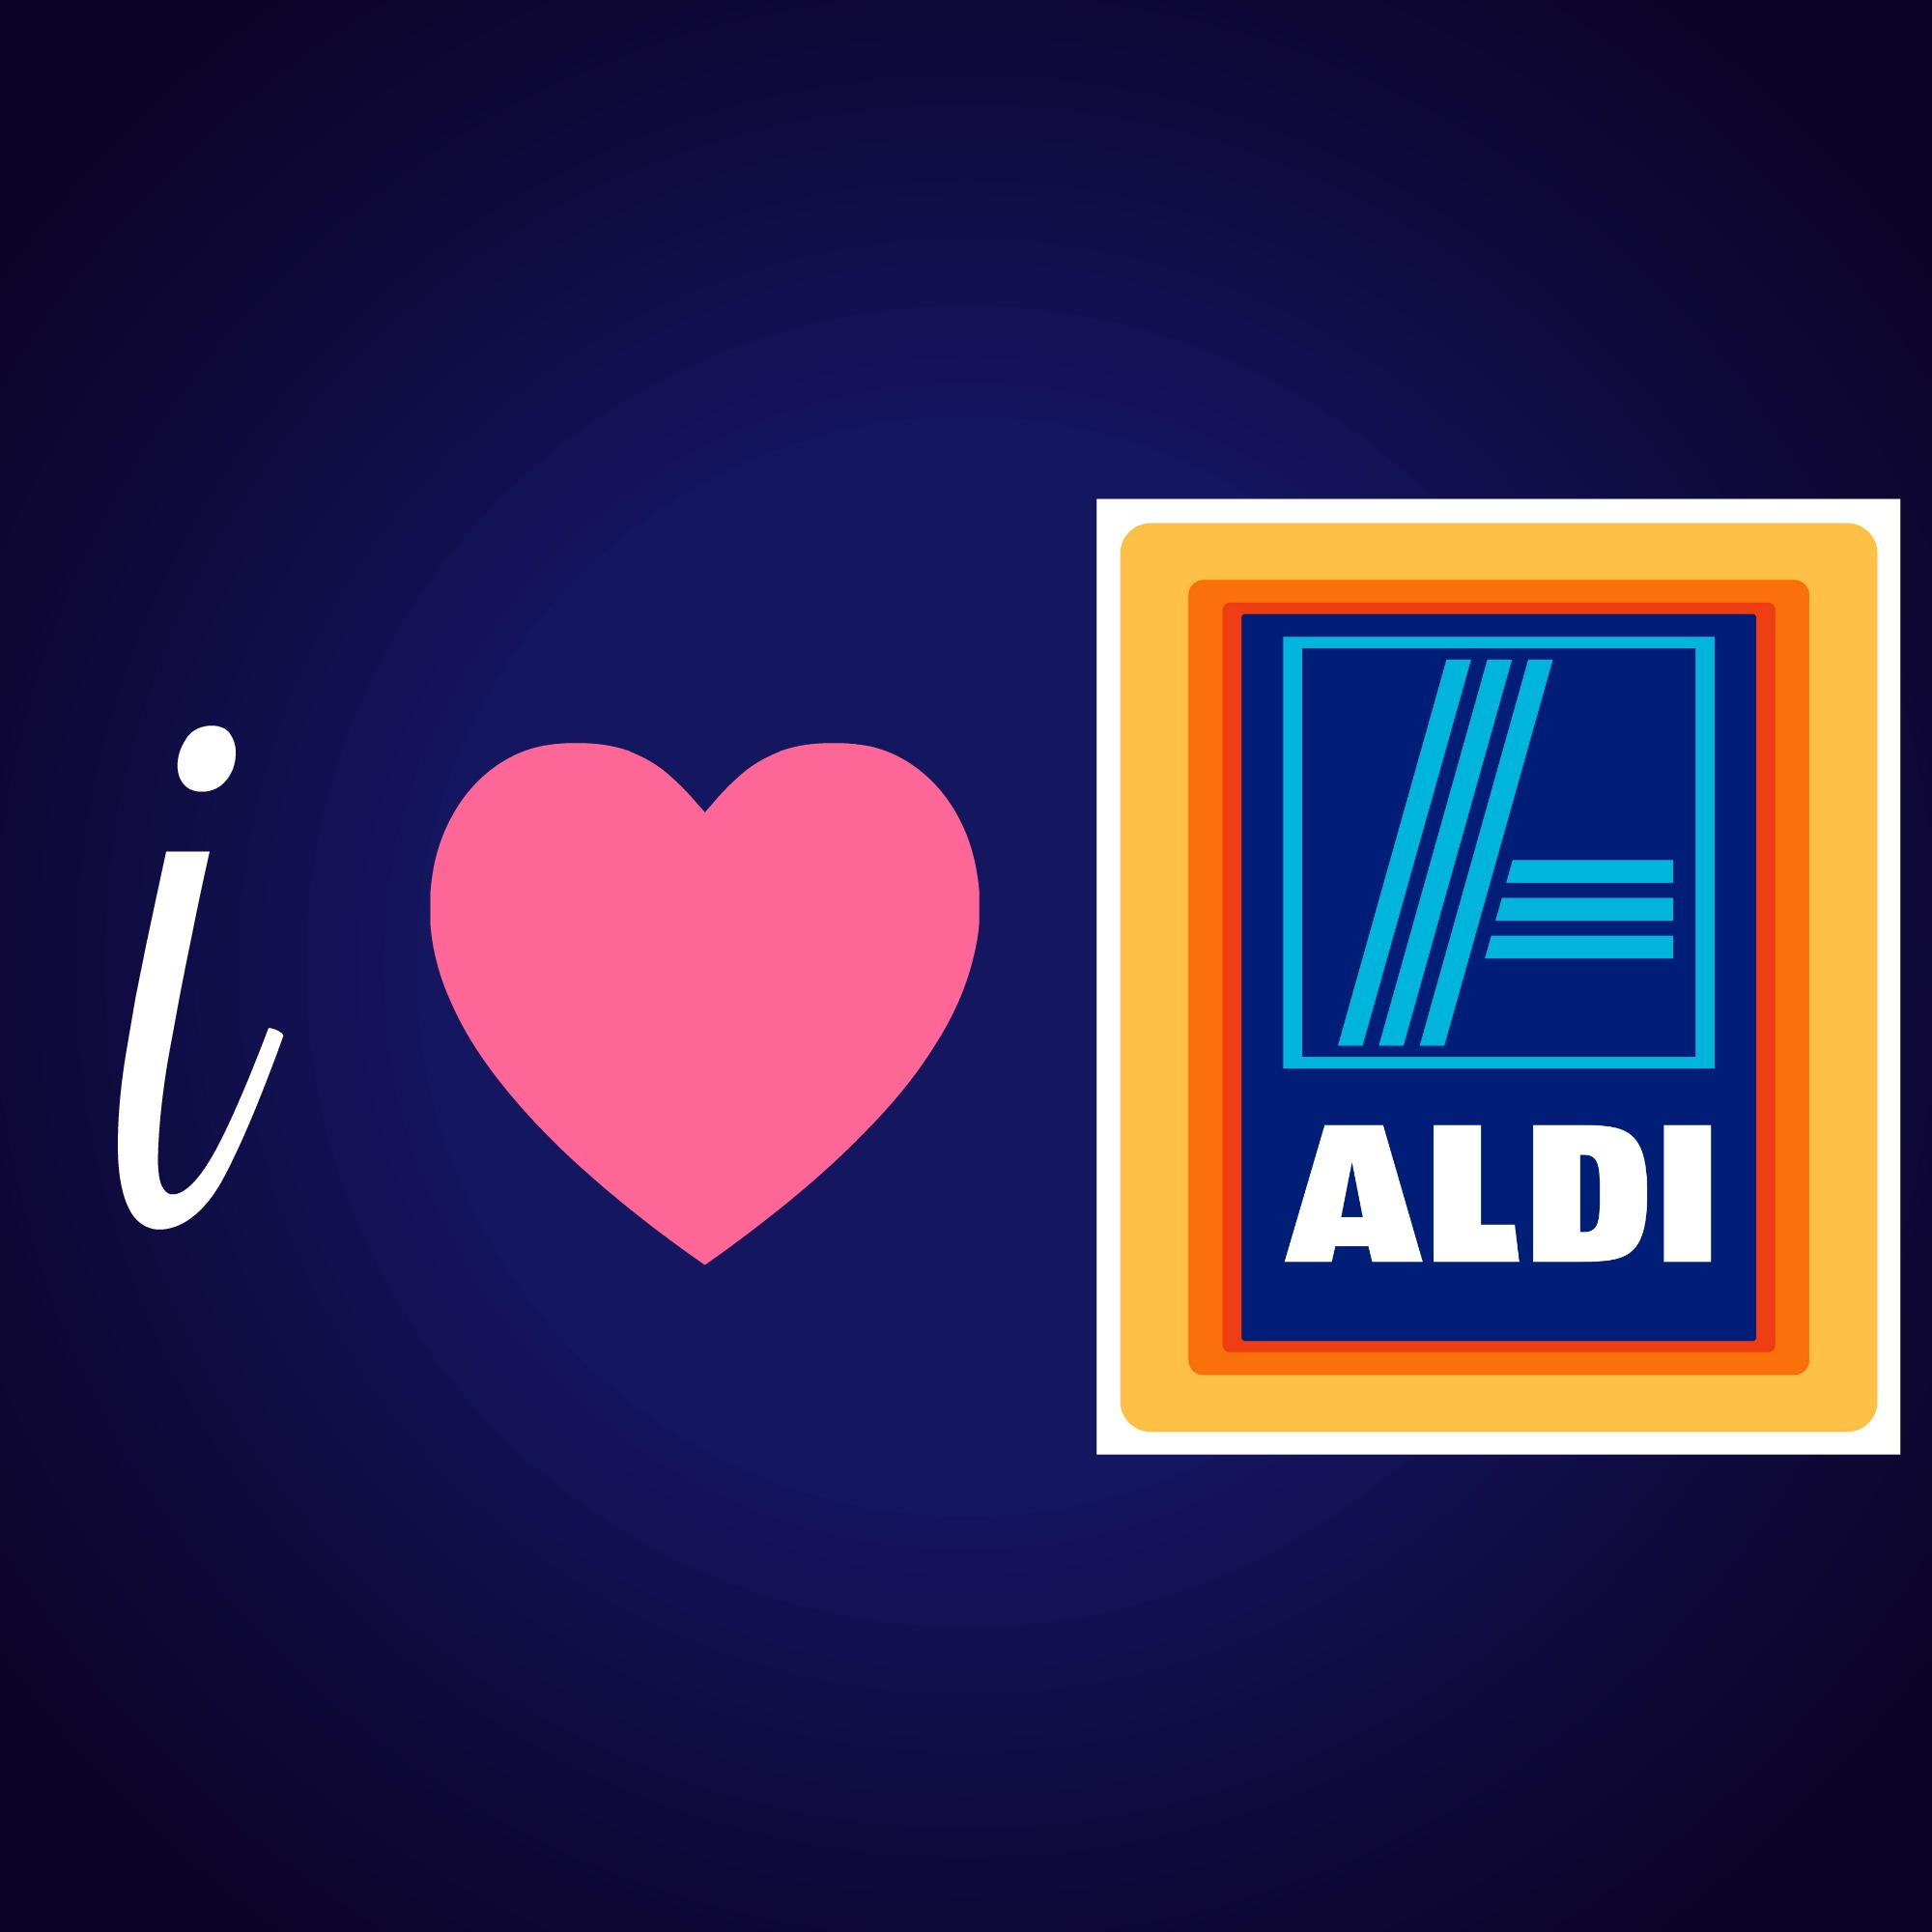 aldi price list